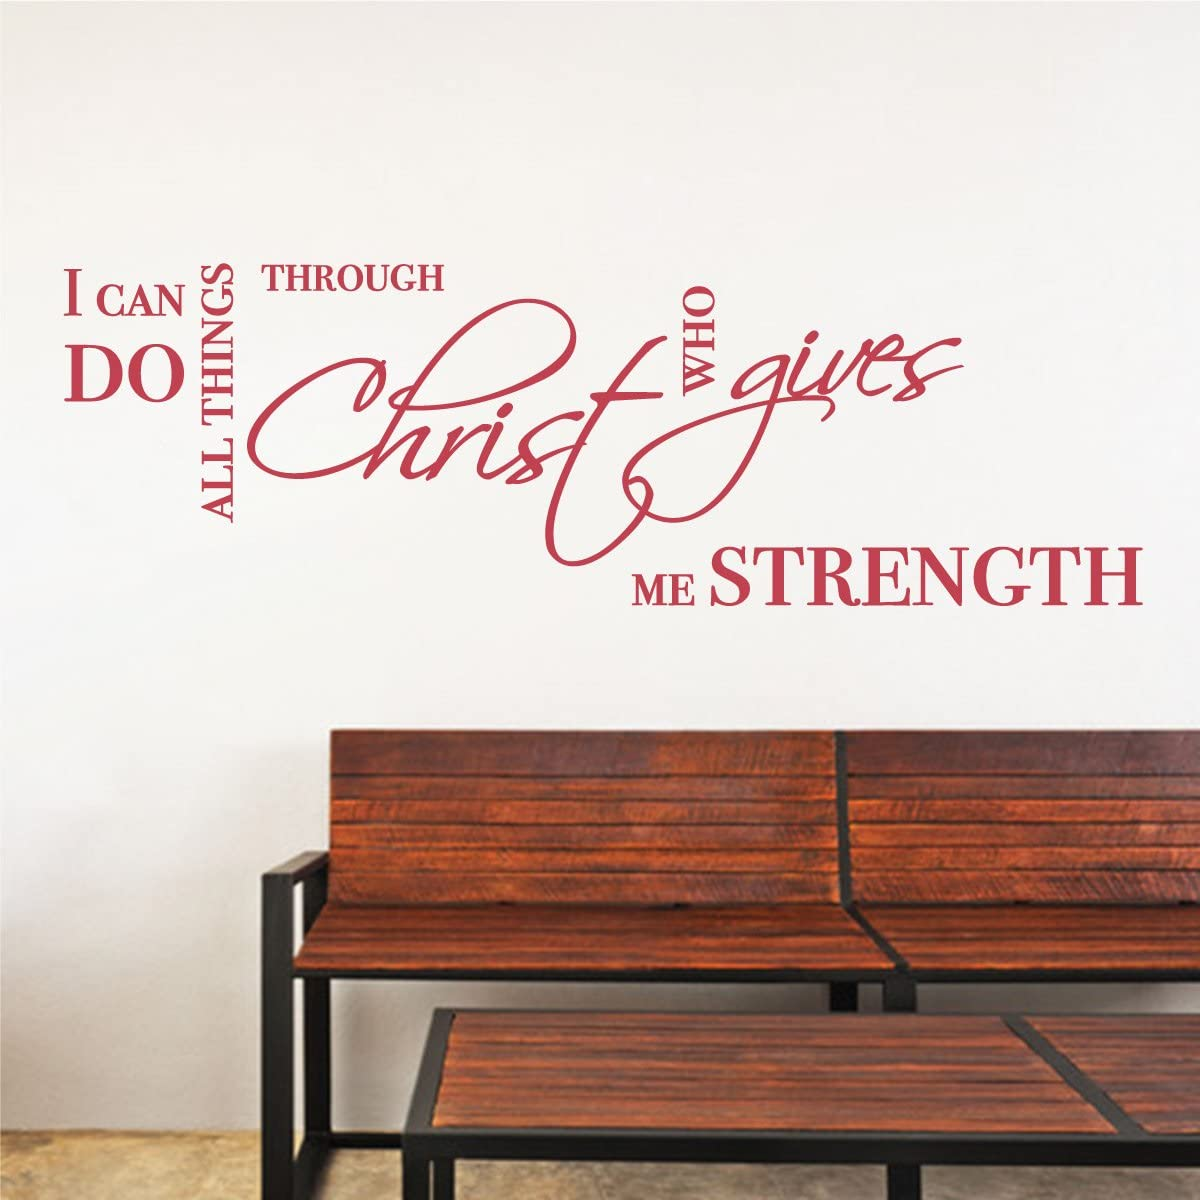 All Things Through Christ Strength Wall Sticker Bible Quote Popular Removable Vinyl Religious Jesus Words Decal (Dahlia Red, 9x36 inches)